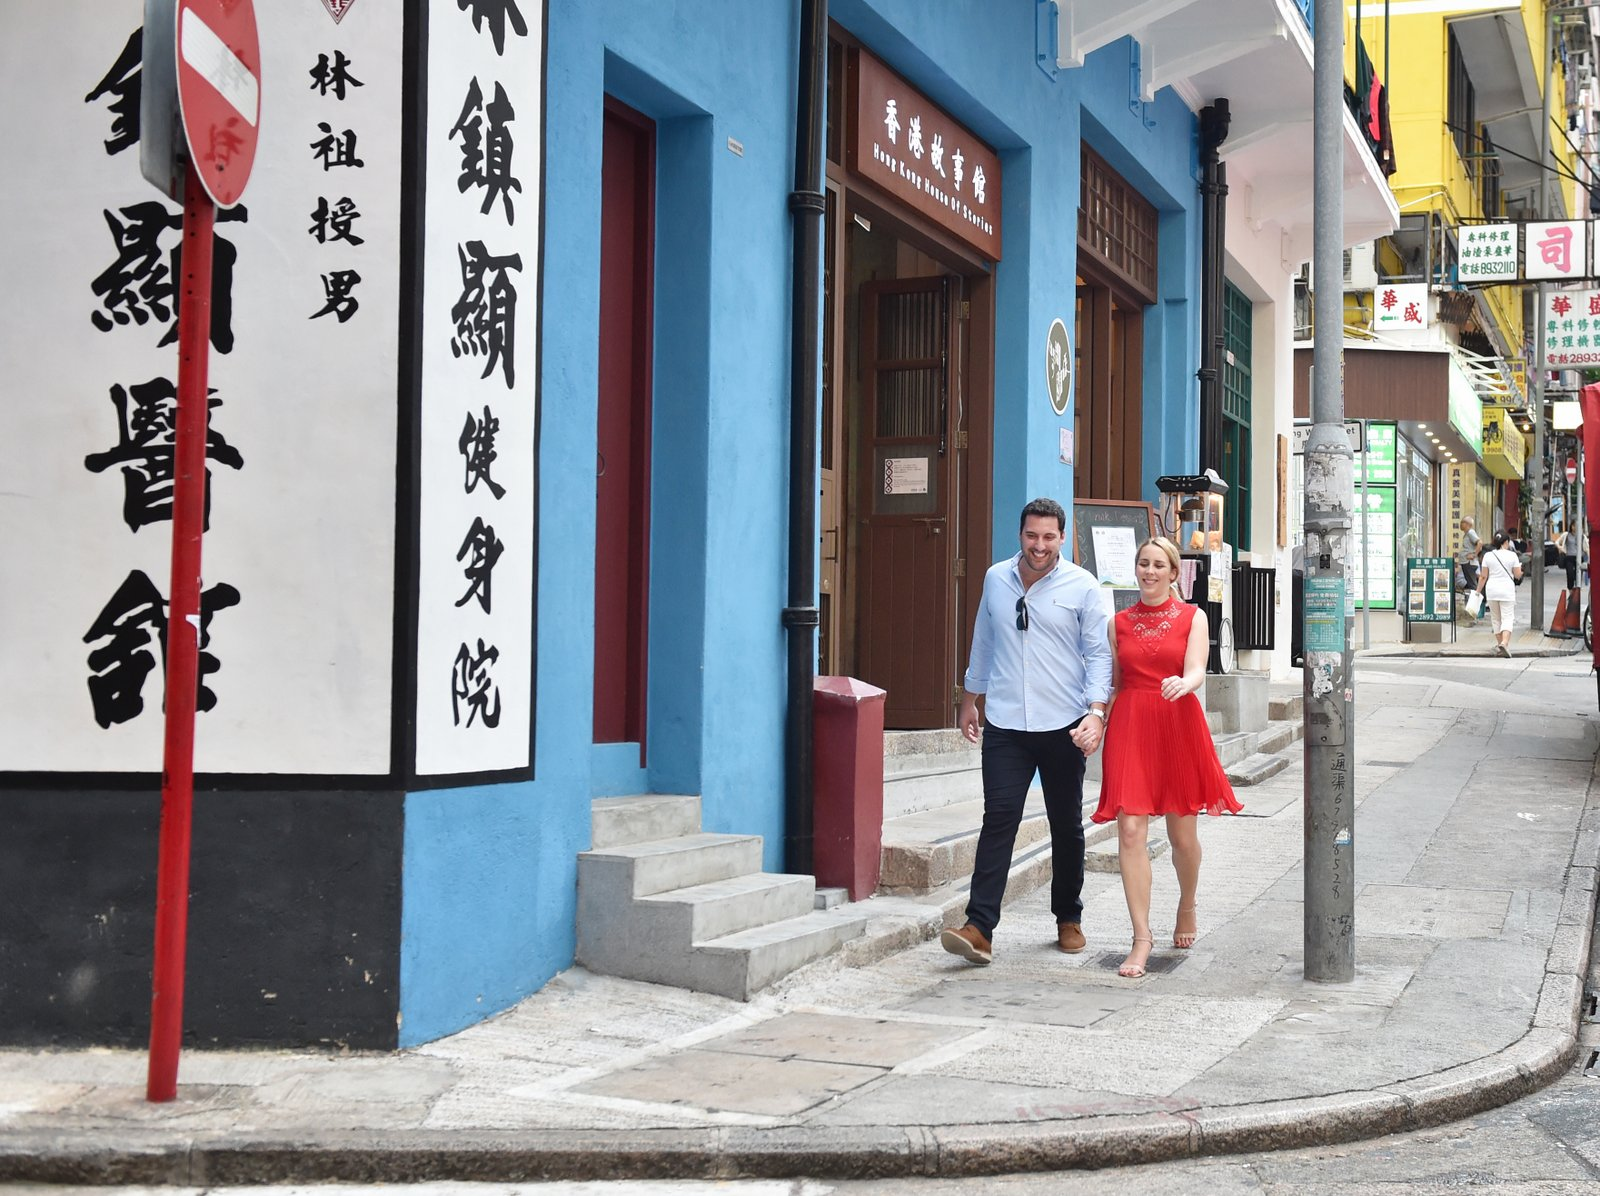 Couple photo in front of a historical building in wanchai HK by aligstudio